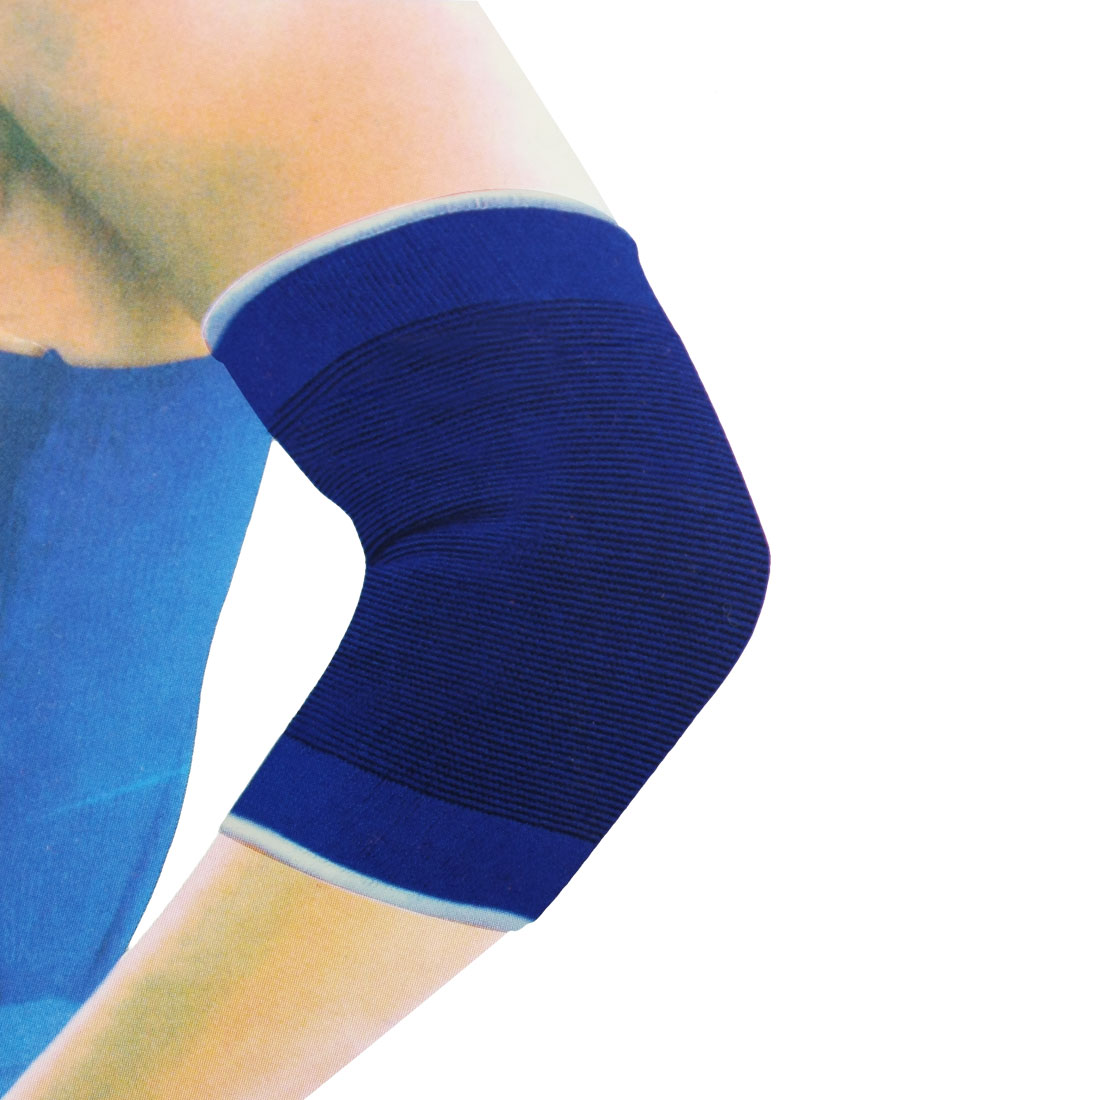 Pair Sports Protective Striped Elastic Elbow Support Sleeve Brace Blue Black